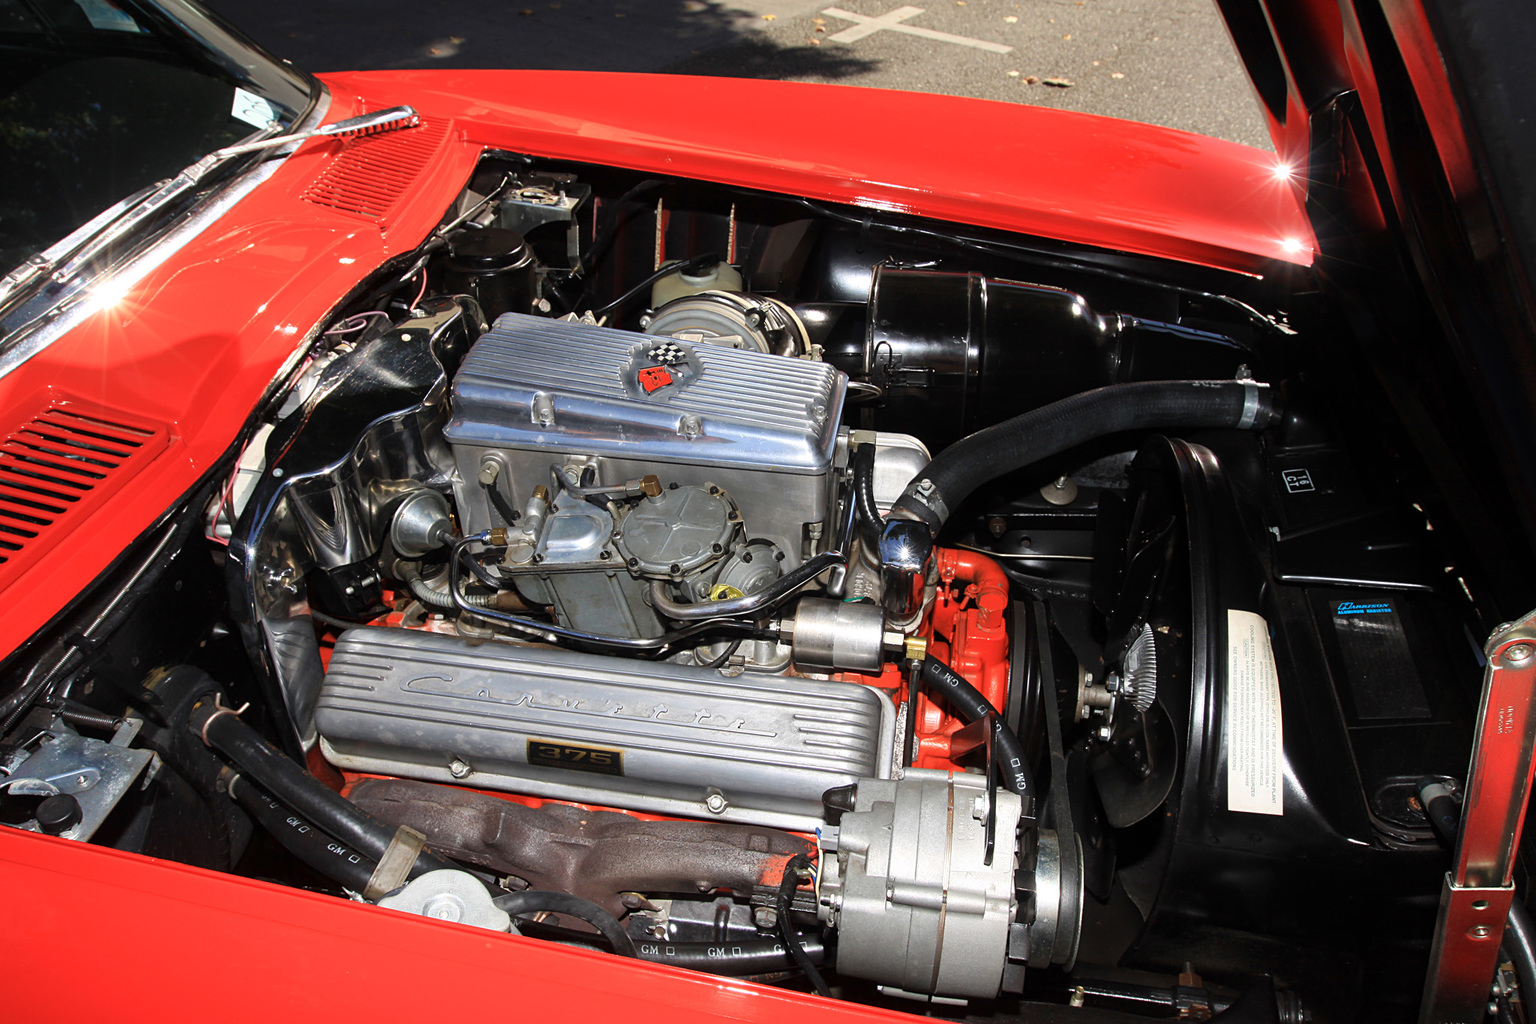 Exposed 1964 L84 engine sitting in red Corvette with hood up